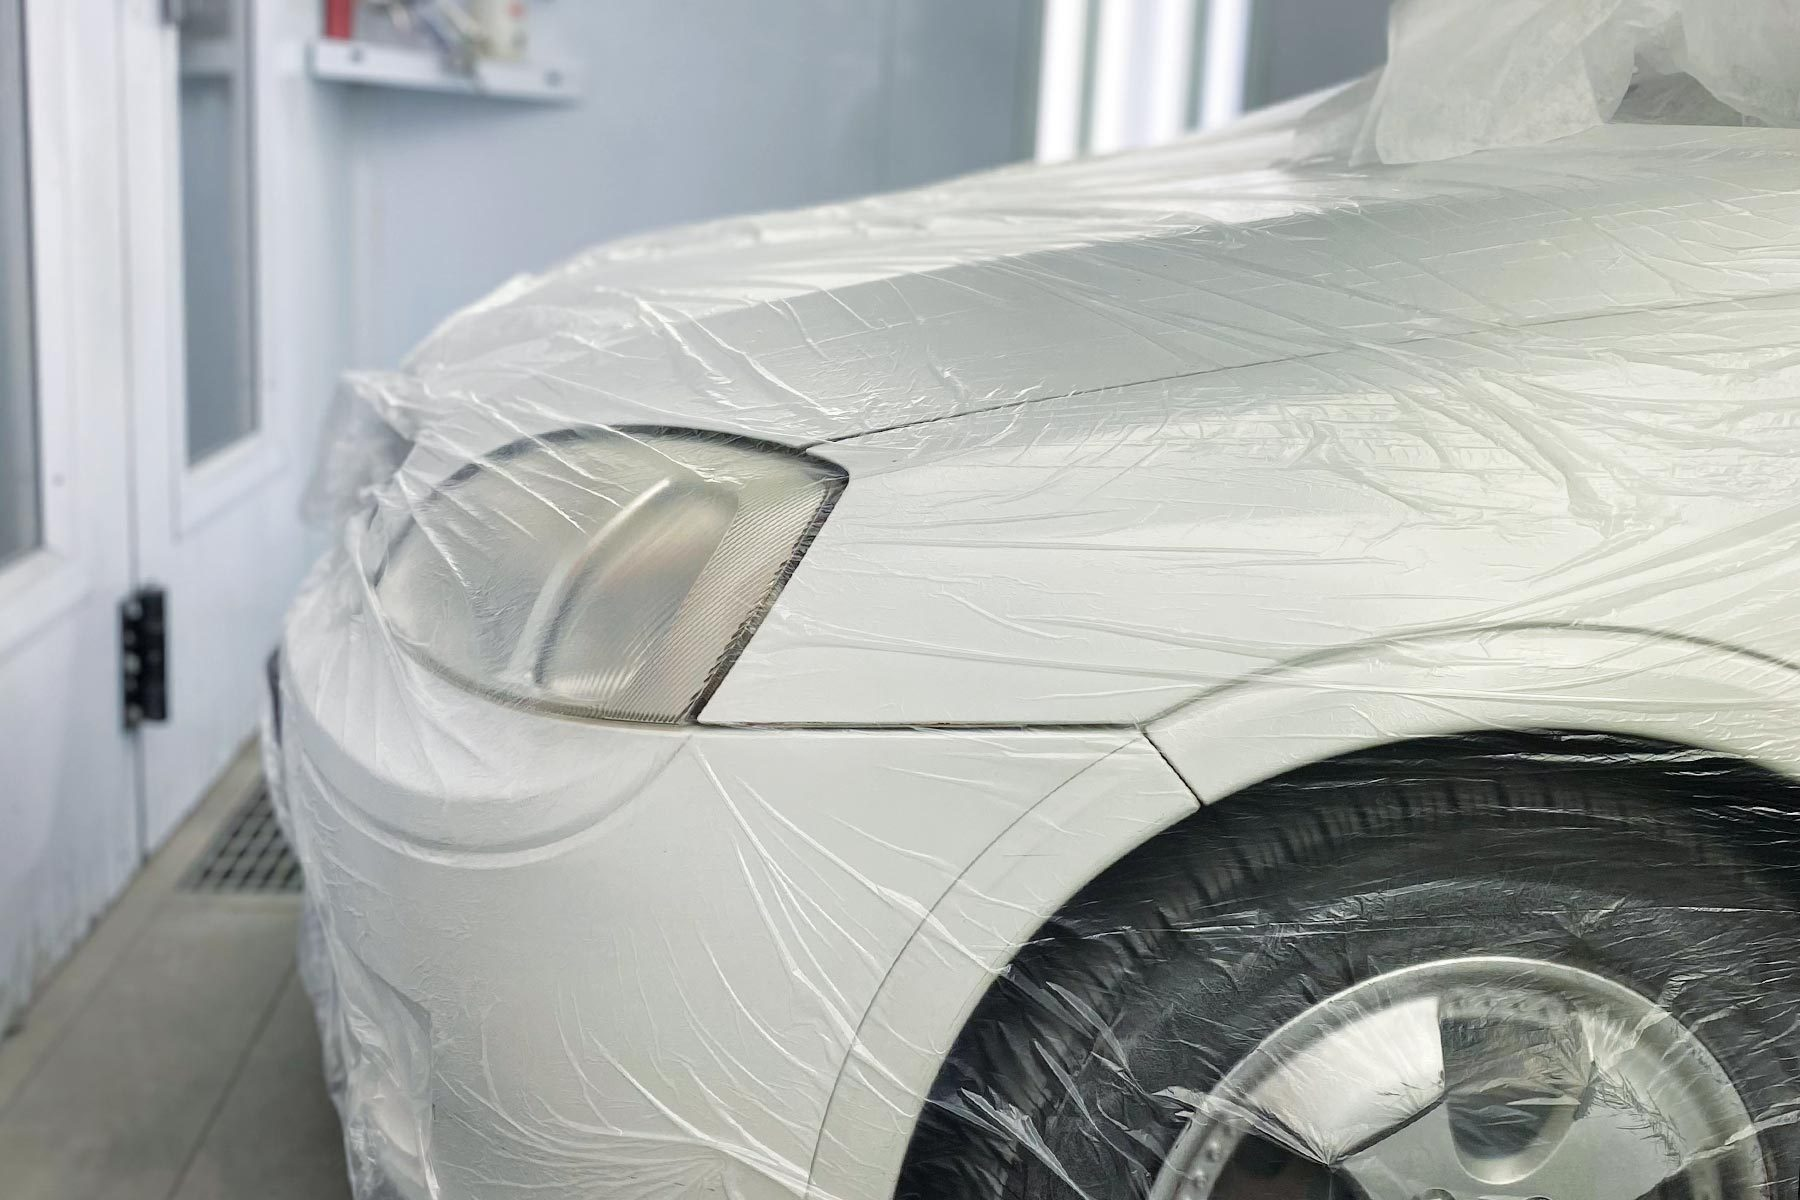 Cannings Paint Detailing